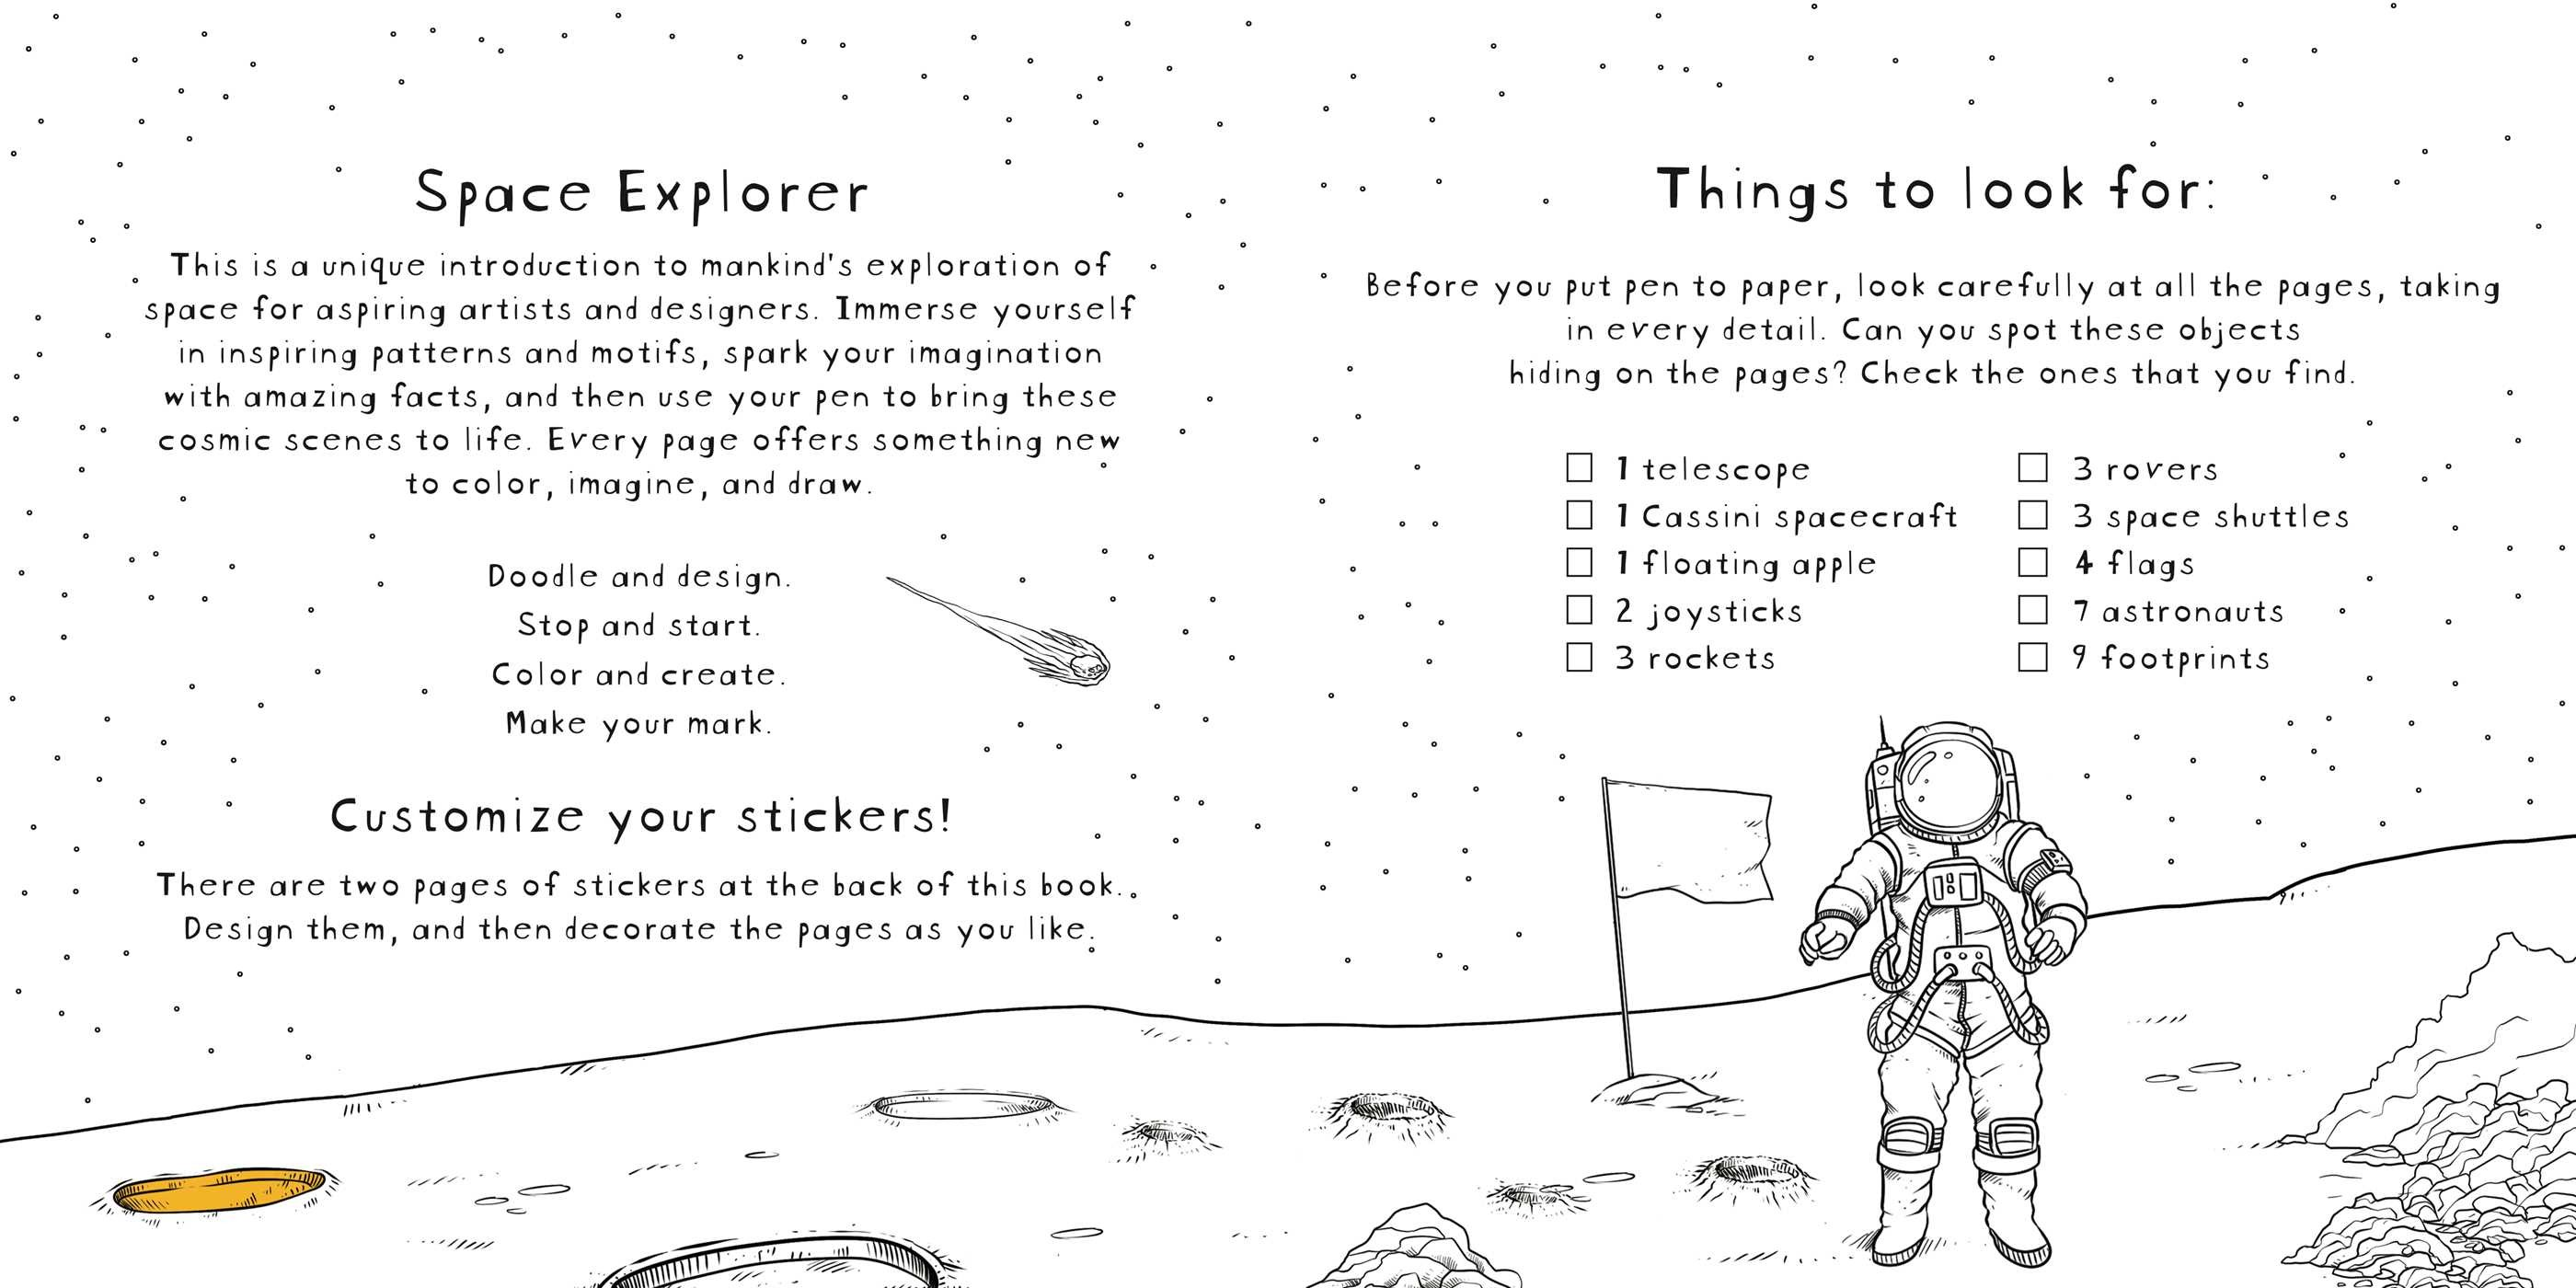 space explorer book by pedro correa official publisher page